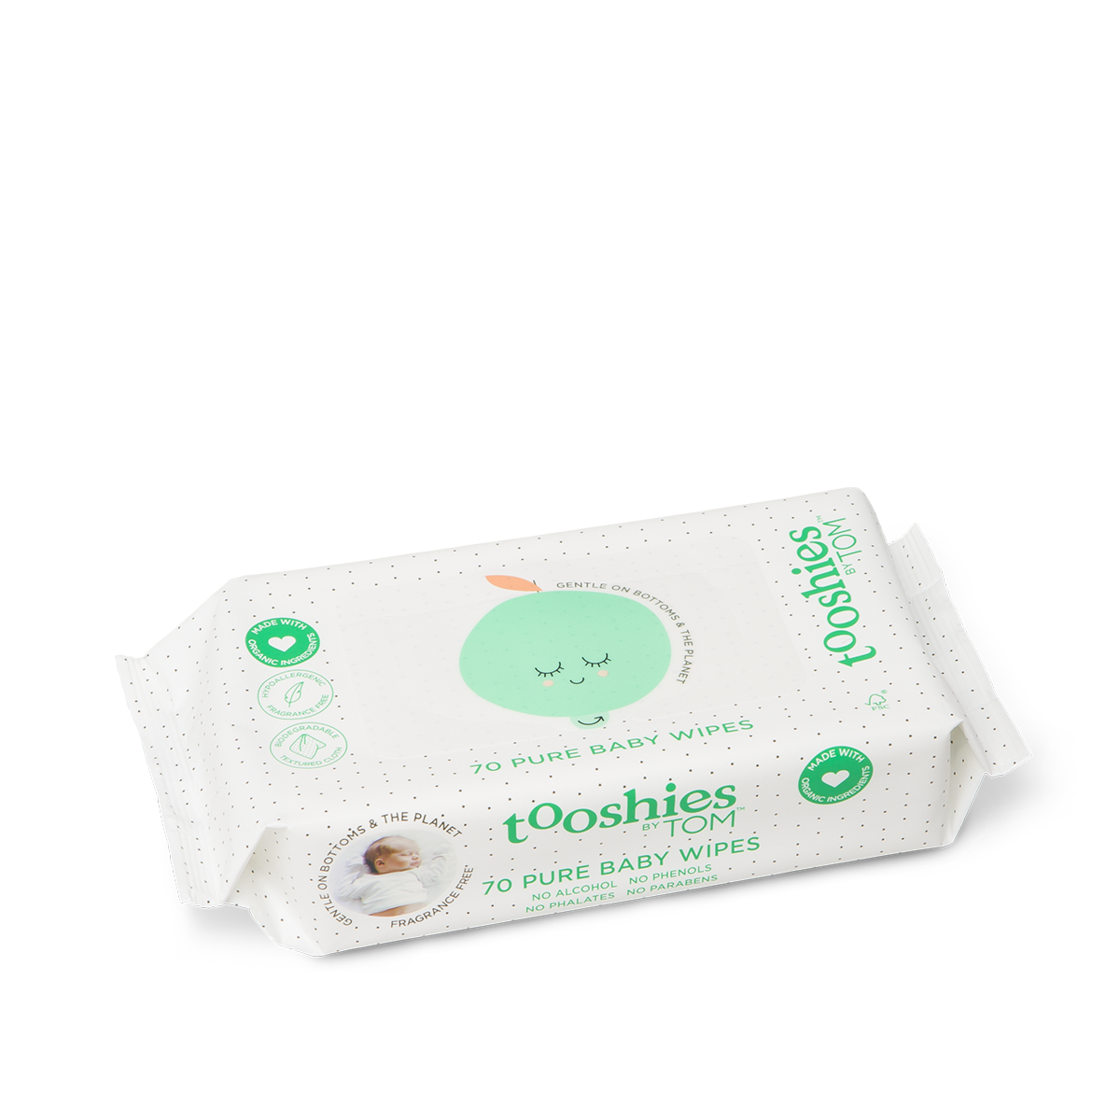 Eco Wipes – Pure Baby Wipes. 70pcs by Tooshies by TOM